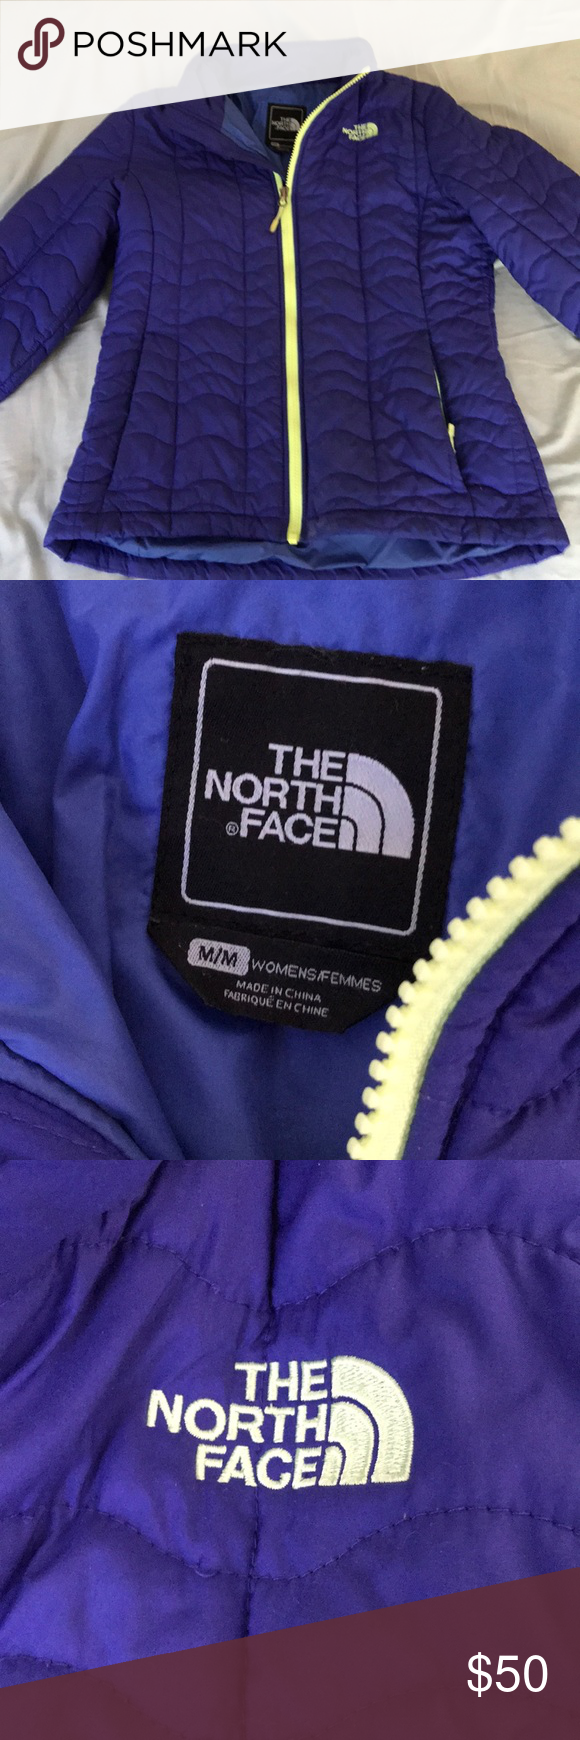 The North Face Purple And Lime Green Winter Jacket Green Winter Jacket Winter Jackets North Face Jacket [ 1740 x 580 Pixel ]